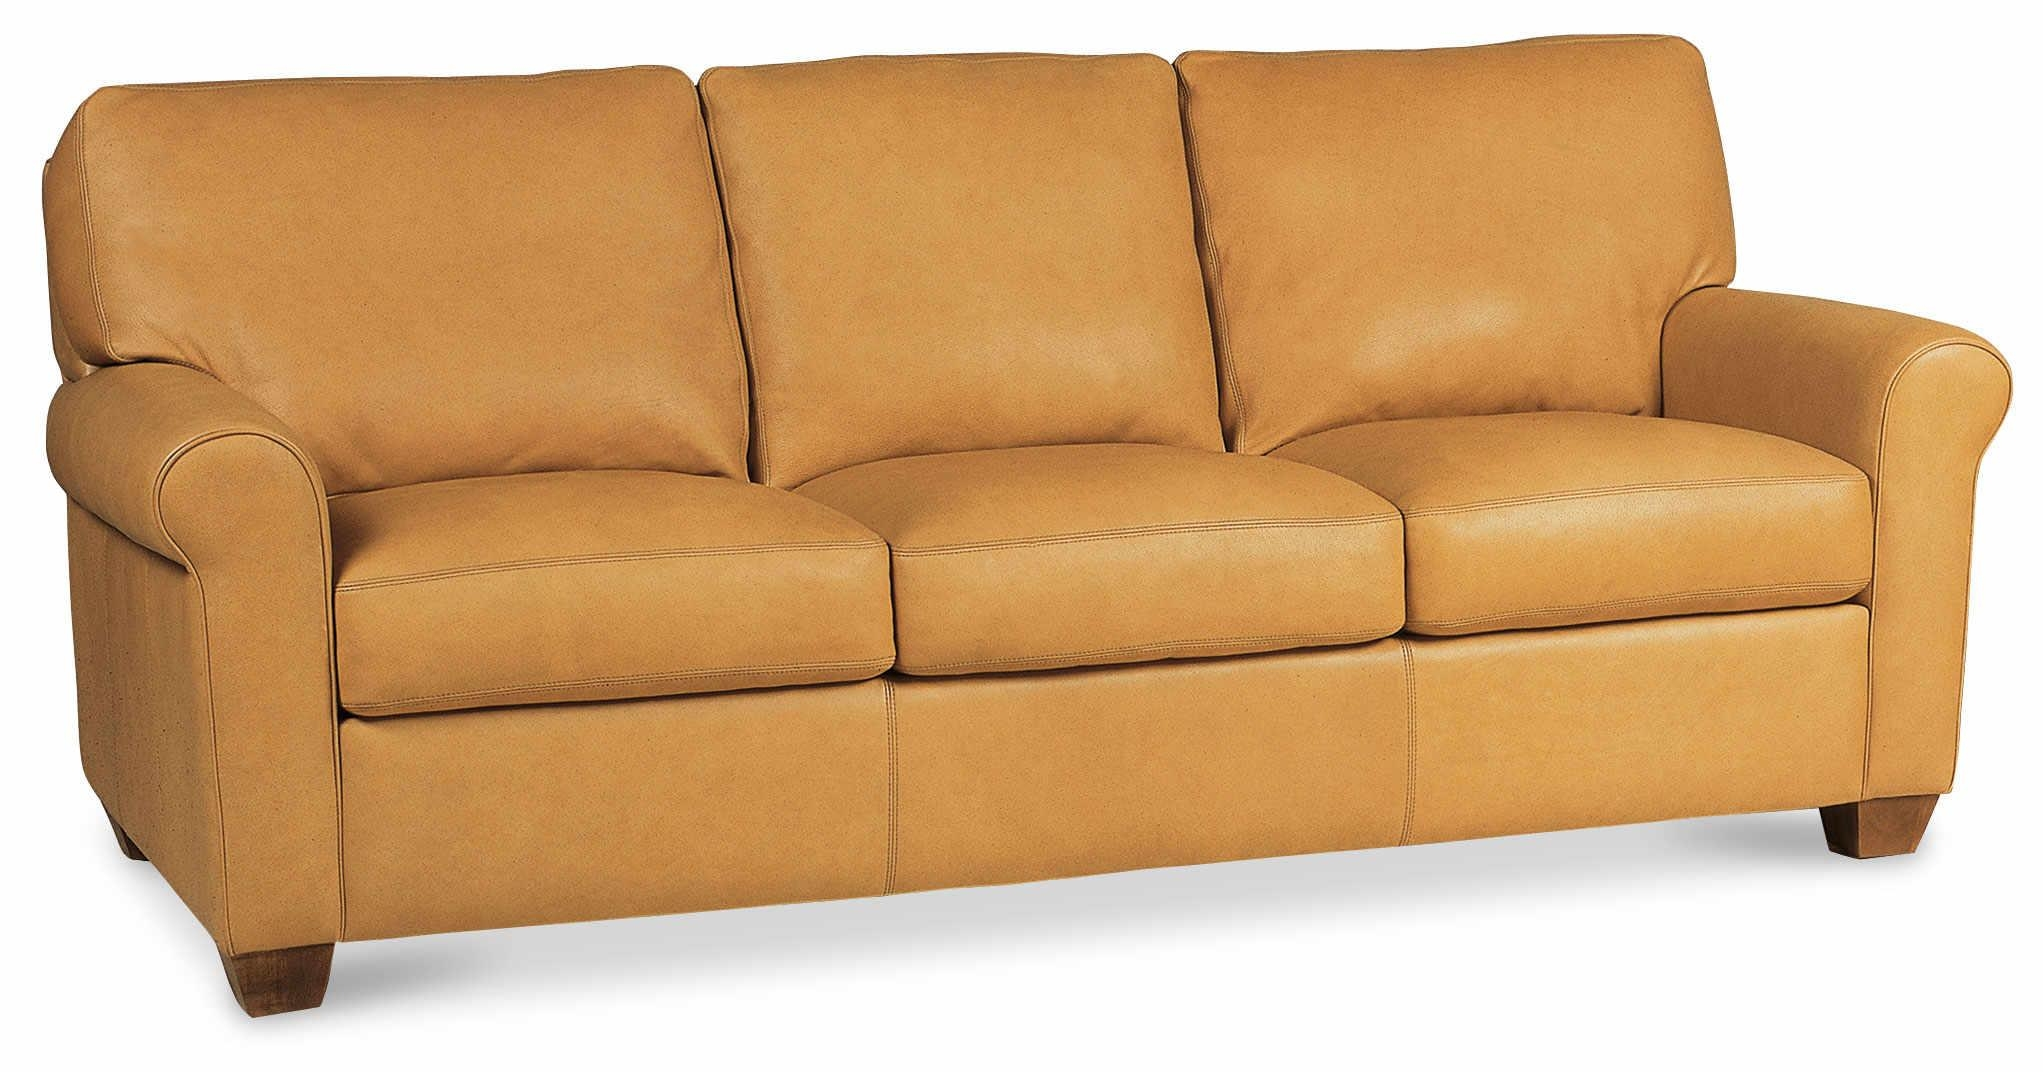 Savoy Sofa And Loveseat – Creative Classics With Regard To Savoy Sofas (Image 15 of 20)